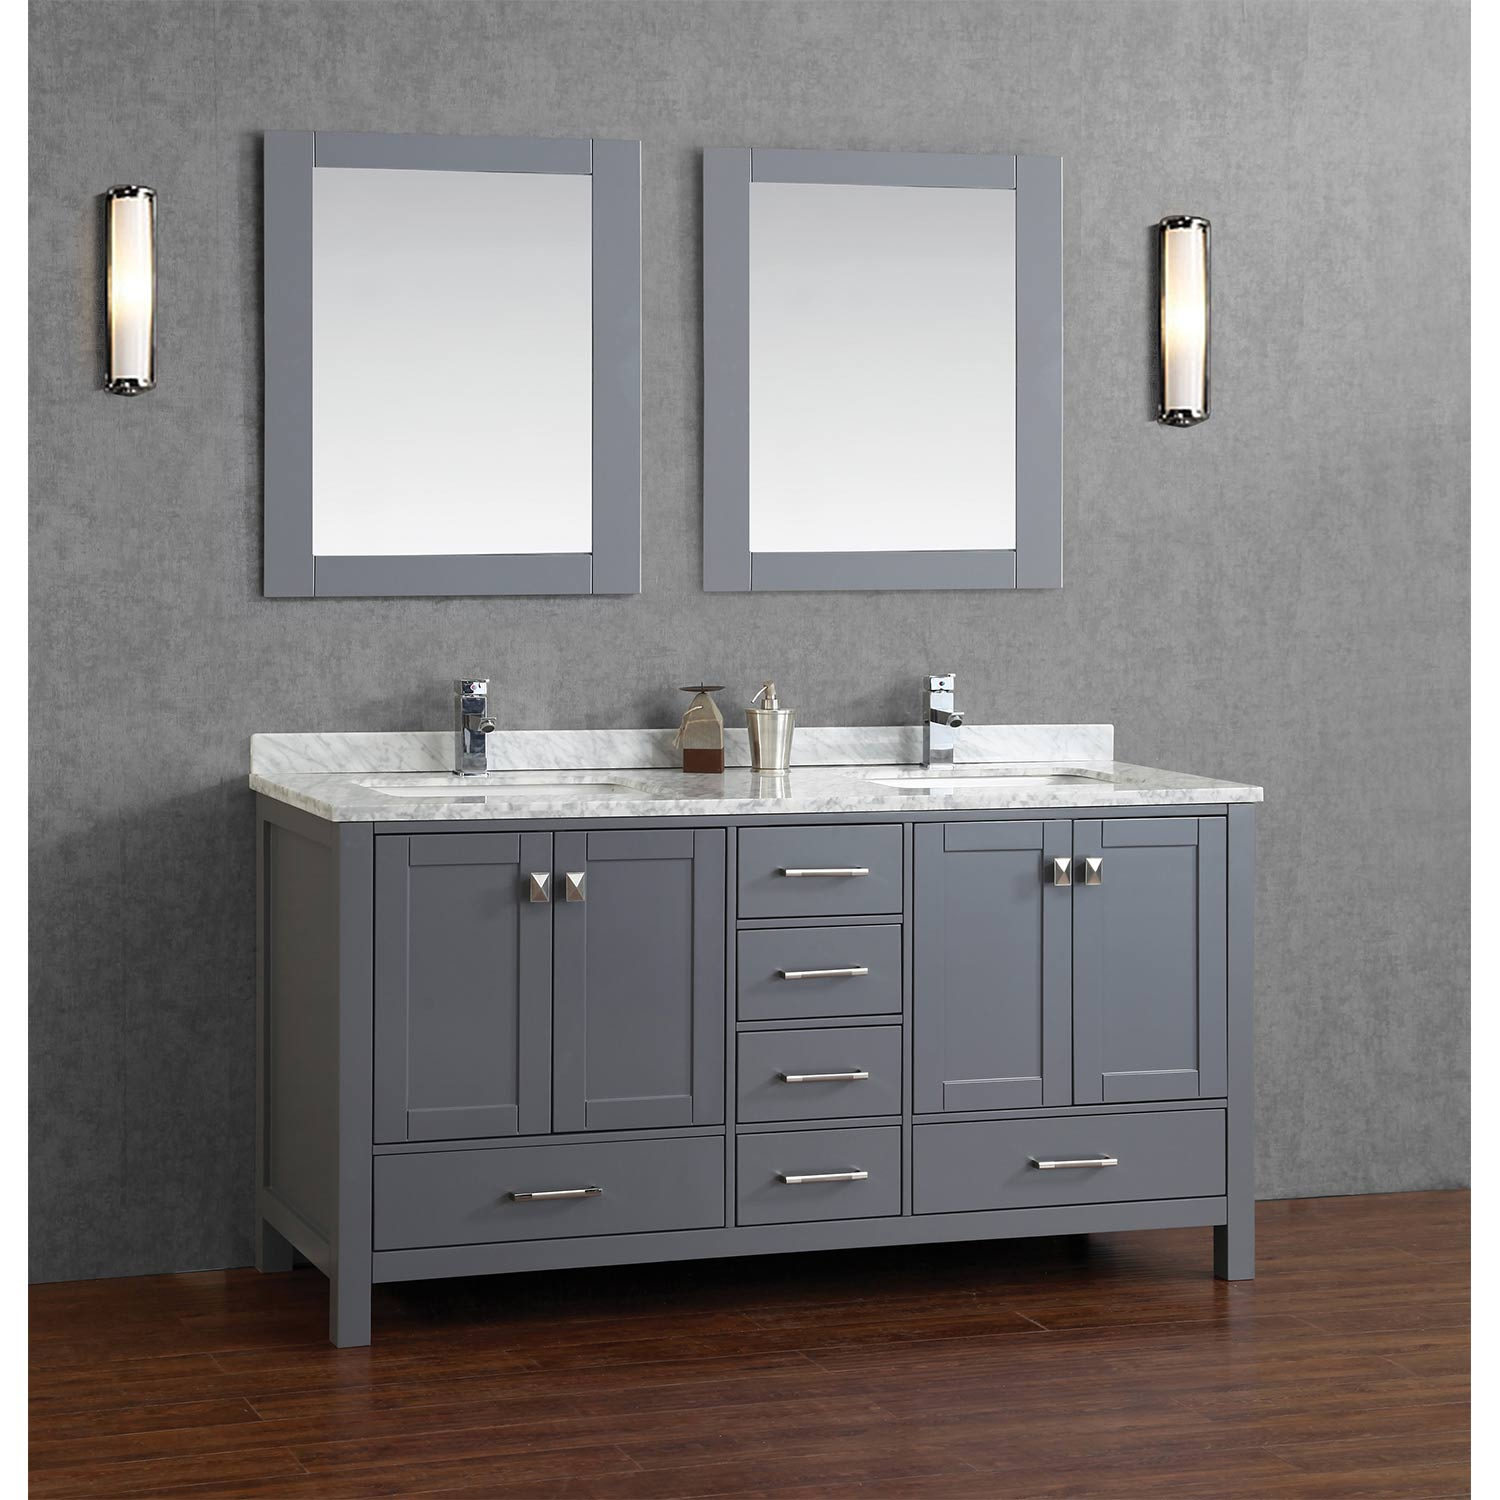 Buy vincent 72 inch solid wood double bathroom vanity in for Bathroom 72 double vanity